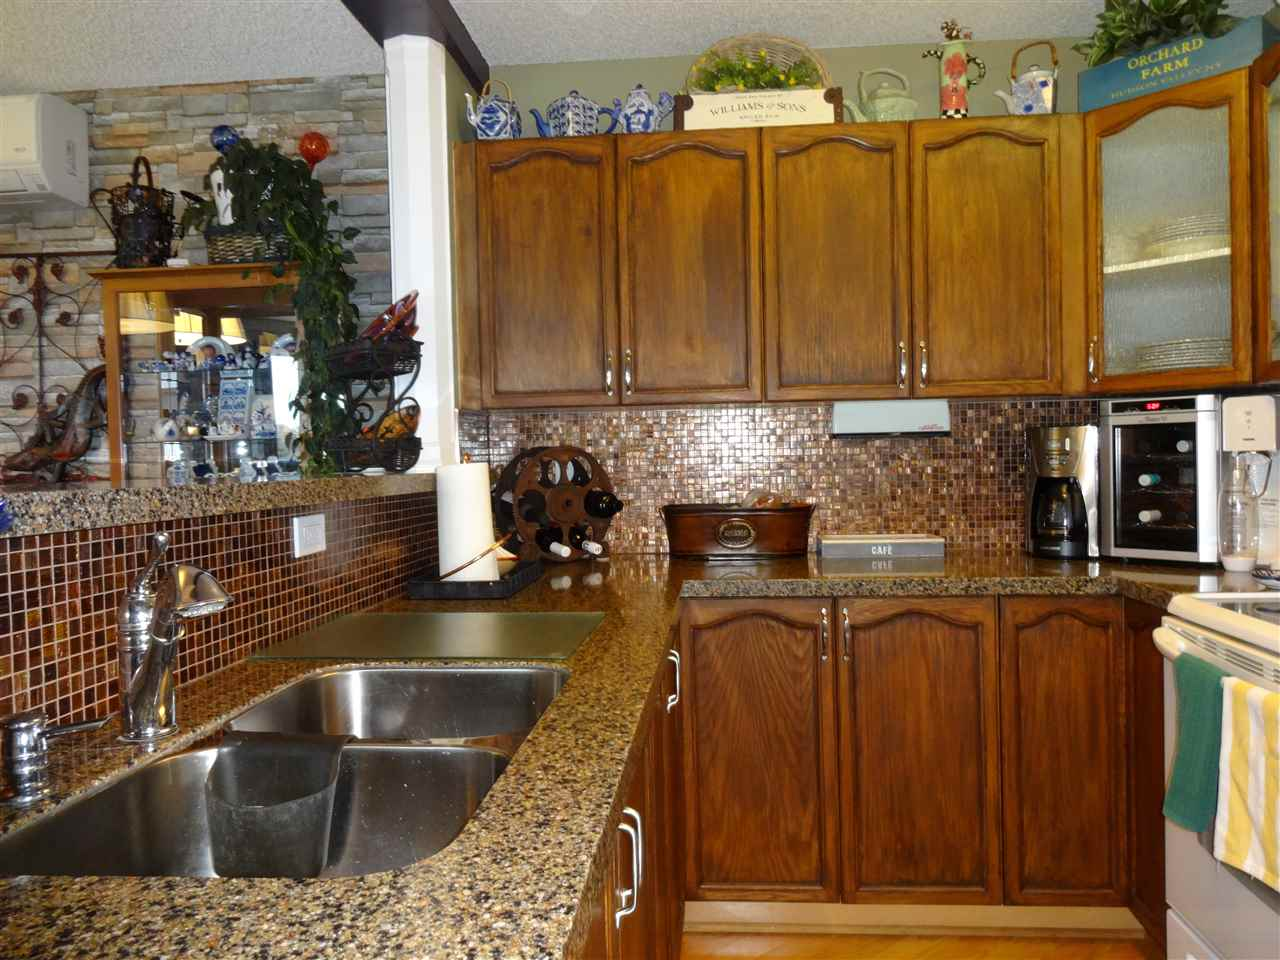 Upgraded Kitchen - stained cupboards, granite countertops, backsplash, glass inserts into cupboards, new taps.